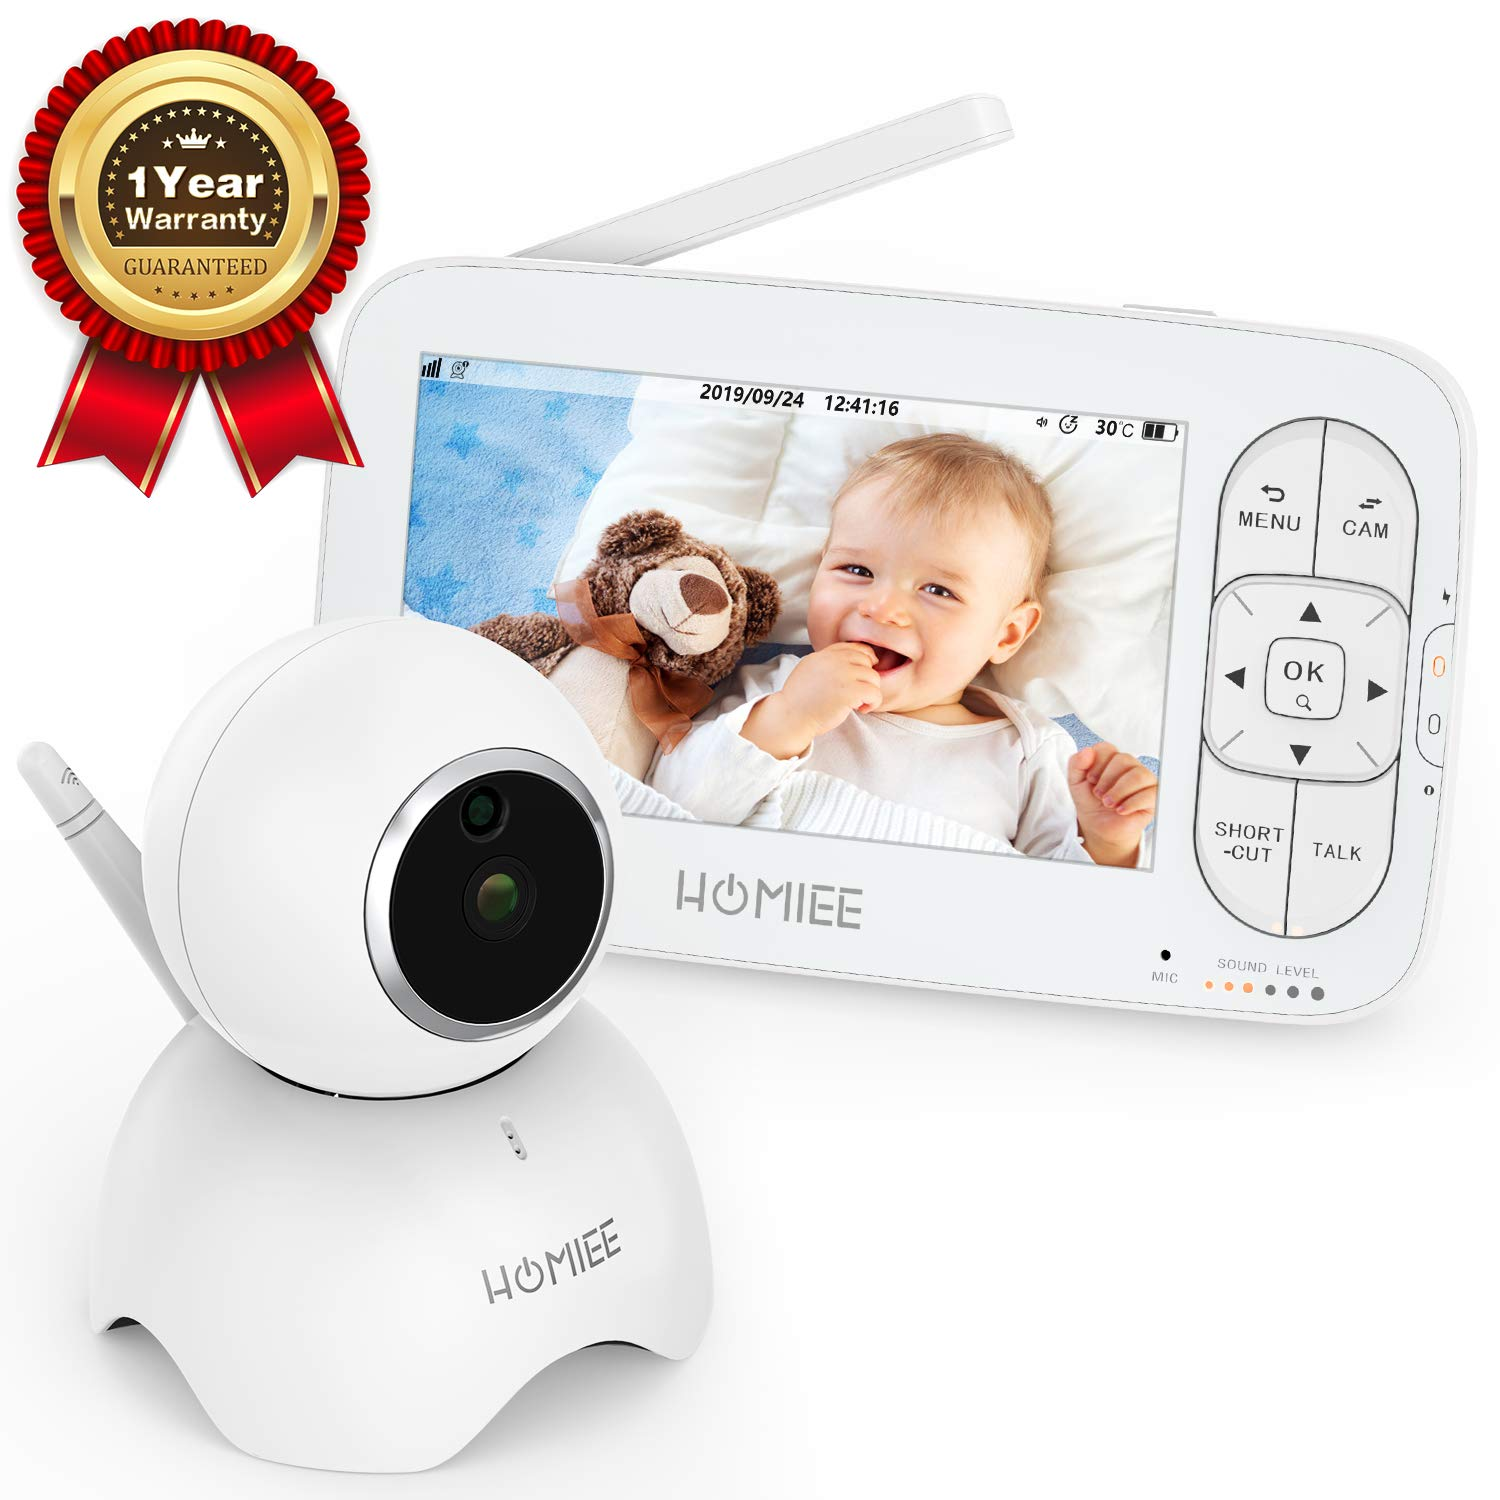 HOMIEE Video Baby Monitor, with 720P Digital Camera, 5 LCD Screen up to 1000 Ft Range, Remote Camera Pan-Tilt-Zoom, Night Vision, Lullabies, Two-Way Audio Talk, Sound Temperature Alarm, Feeding Timer